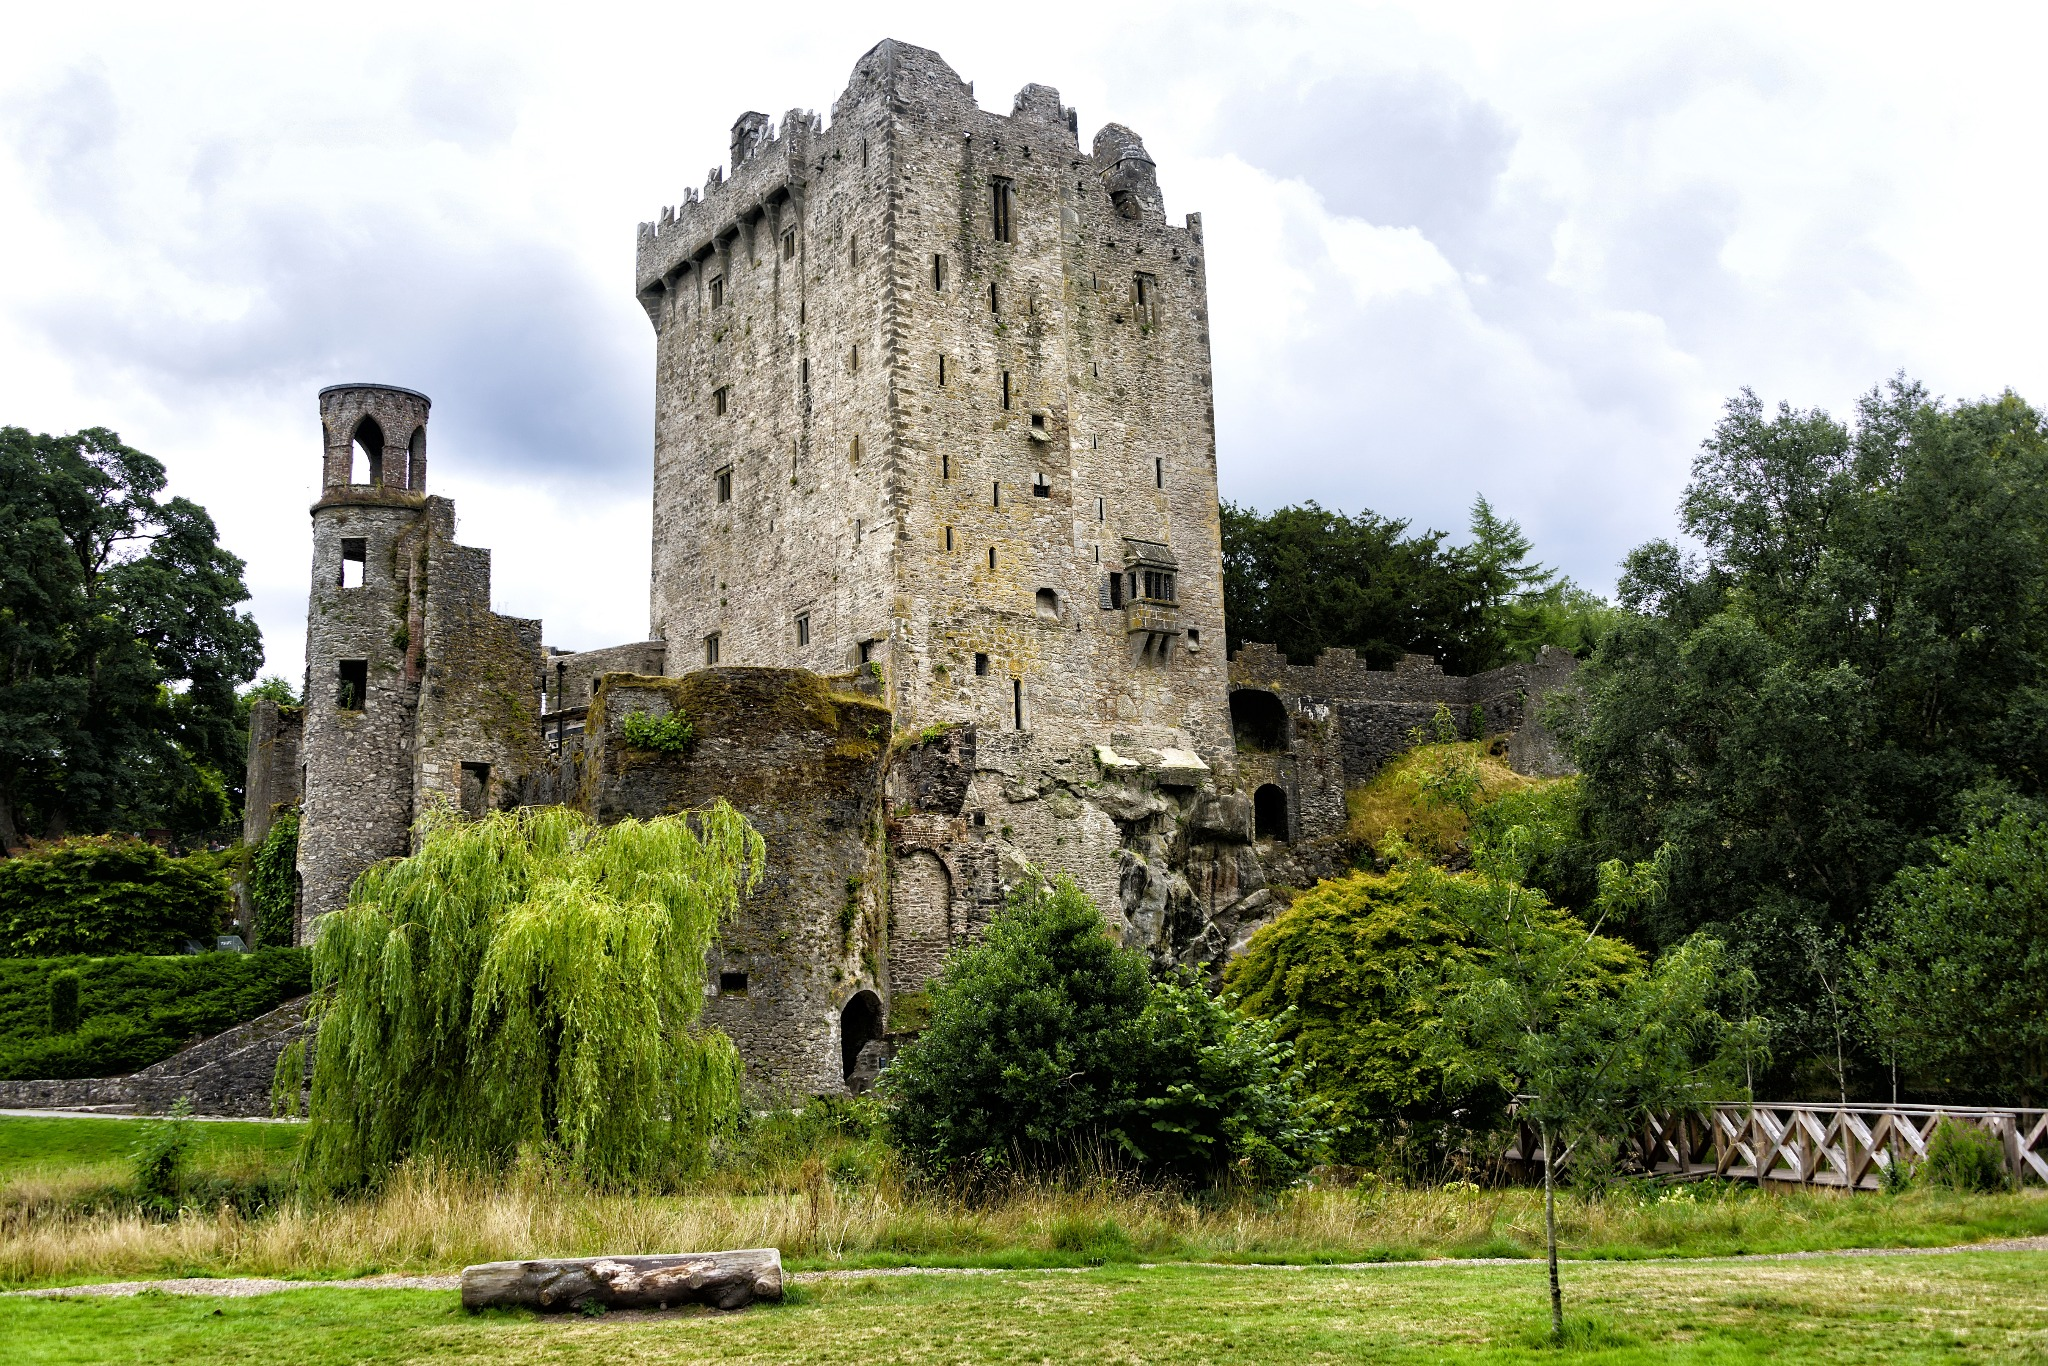 Blarney Castle is one of the many castles in Ireland.